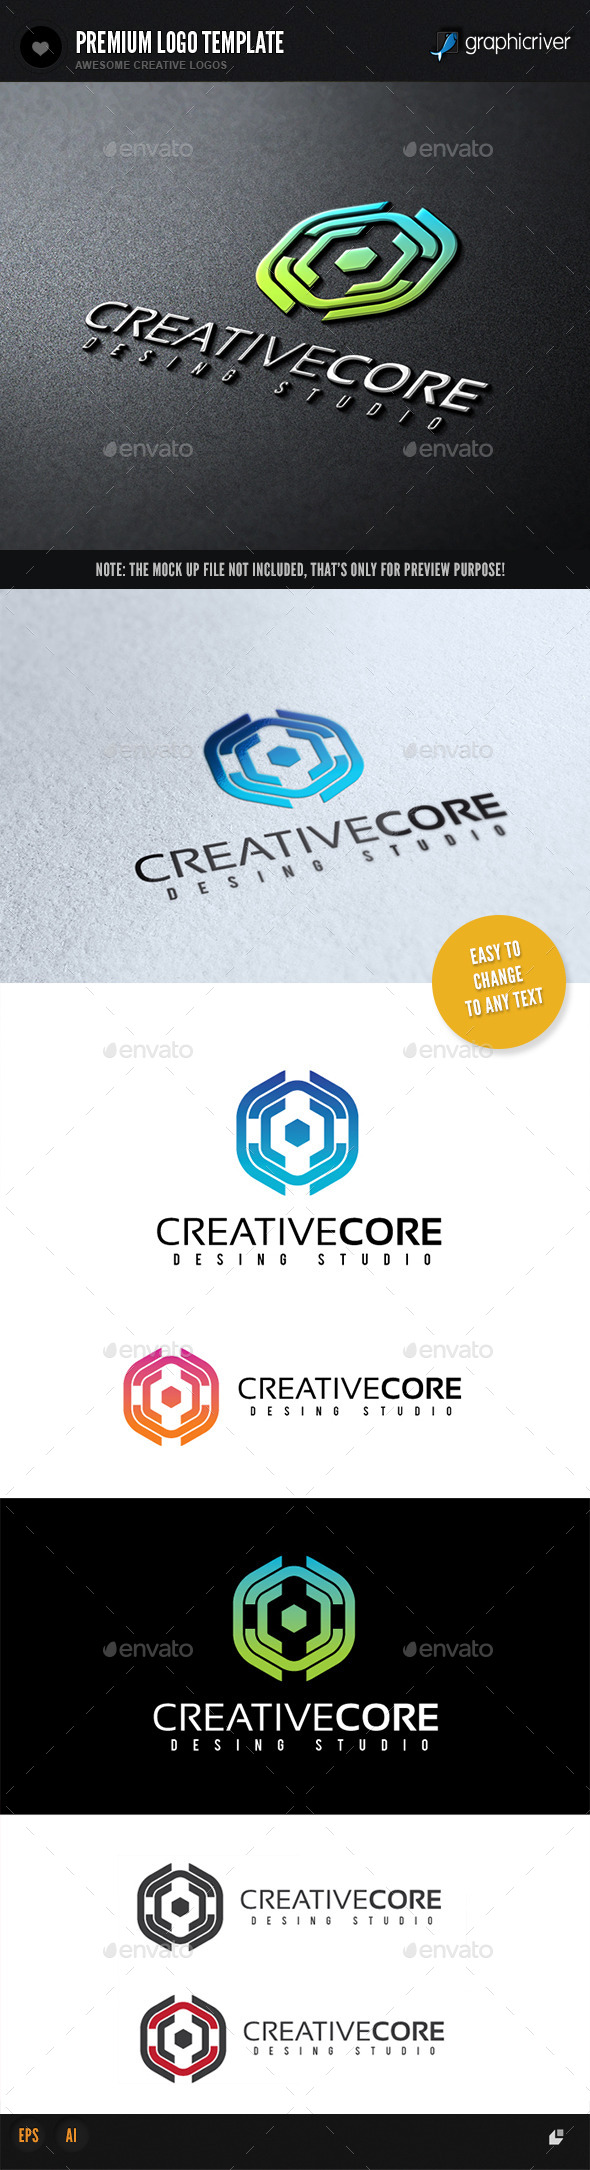 GraphicRiver Creative Core 9833818